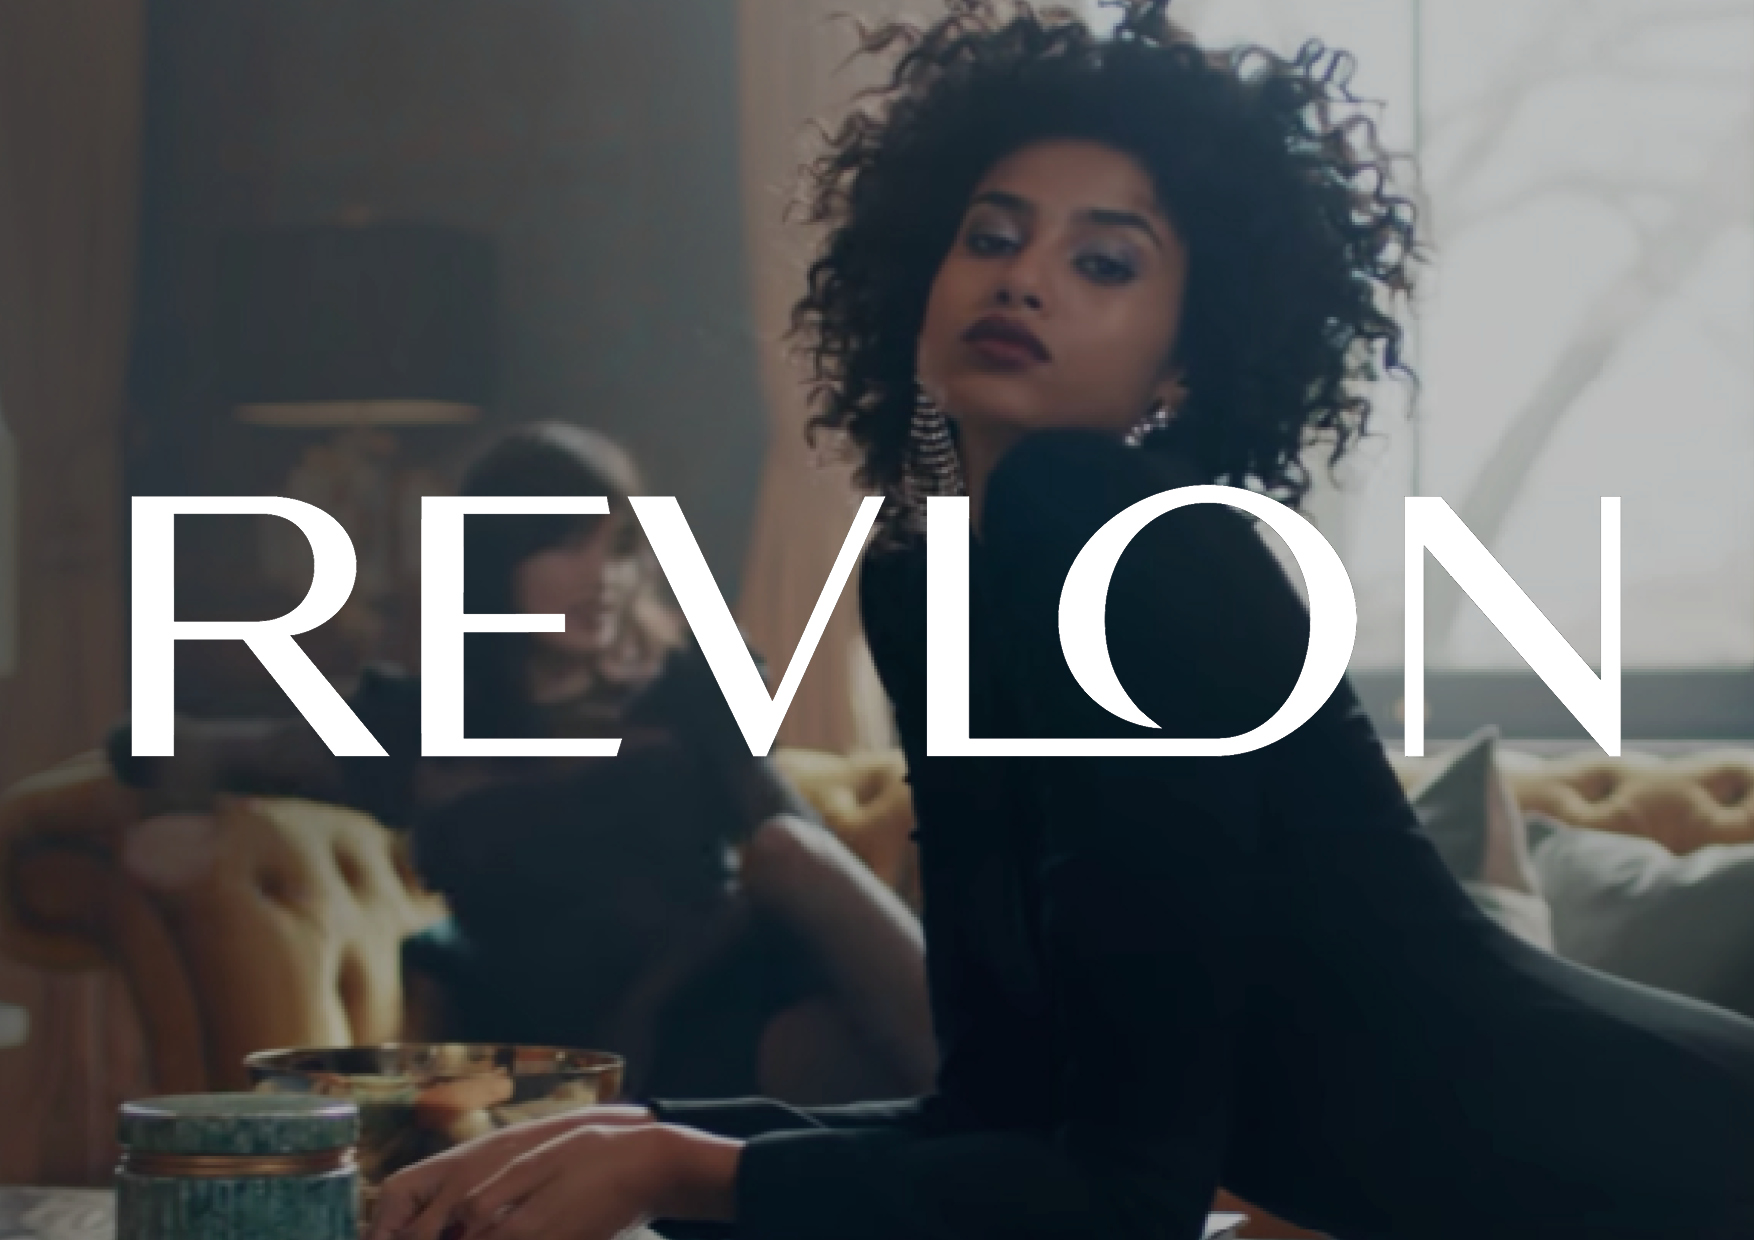 Attitude, personality and identity to reconnect long-established brands to culture